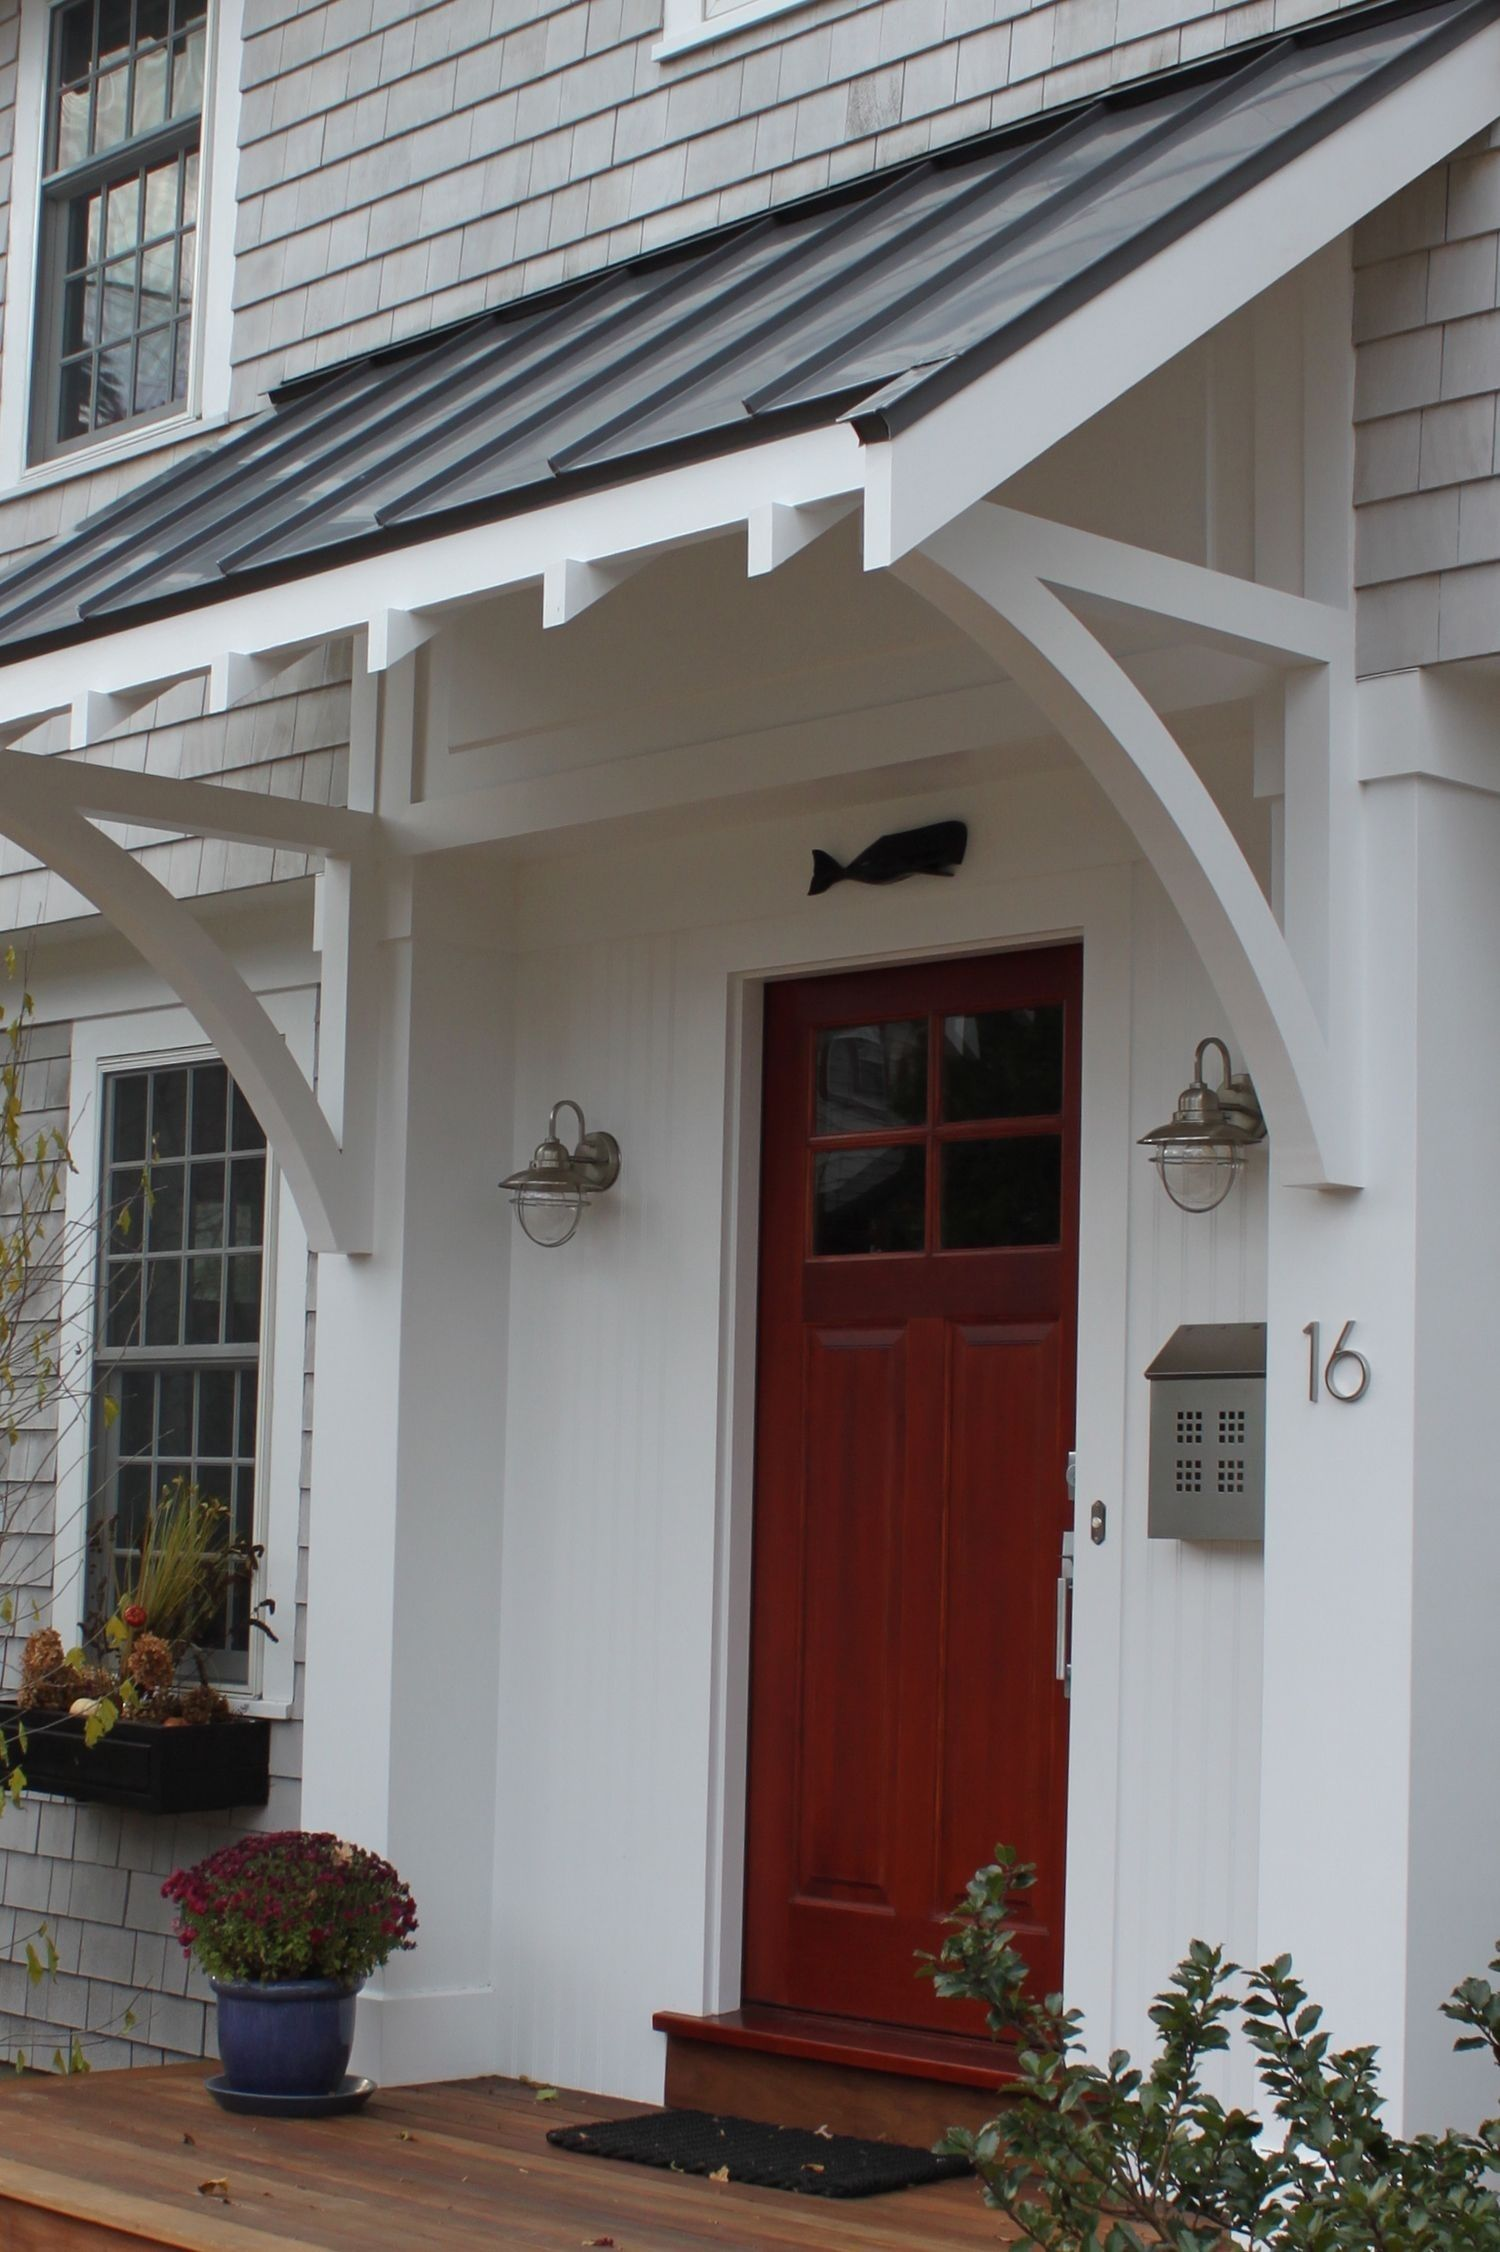 The 14 Perfect Front Porch Awning Ideas Op07a4 Porch Awning